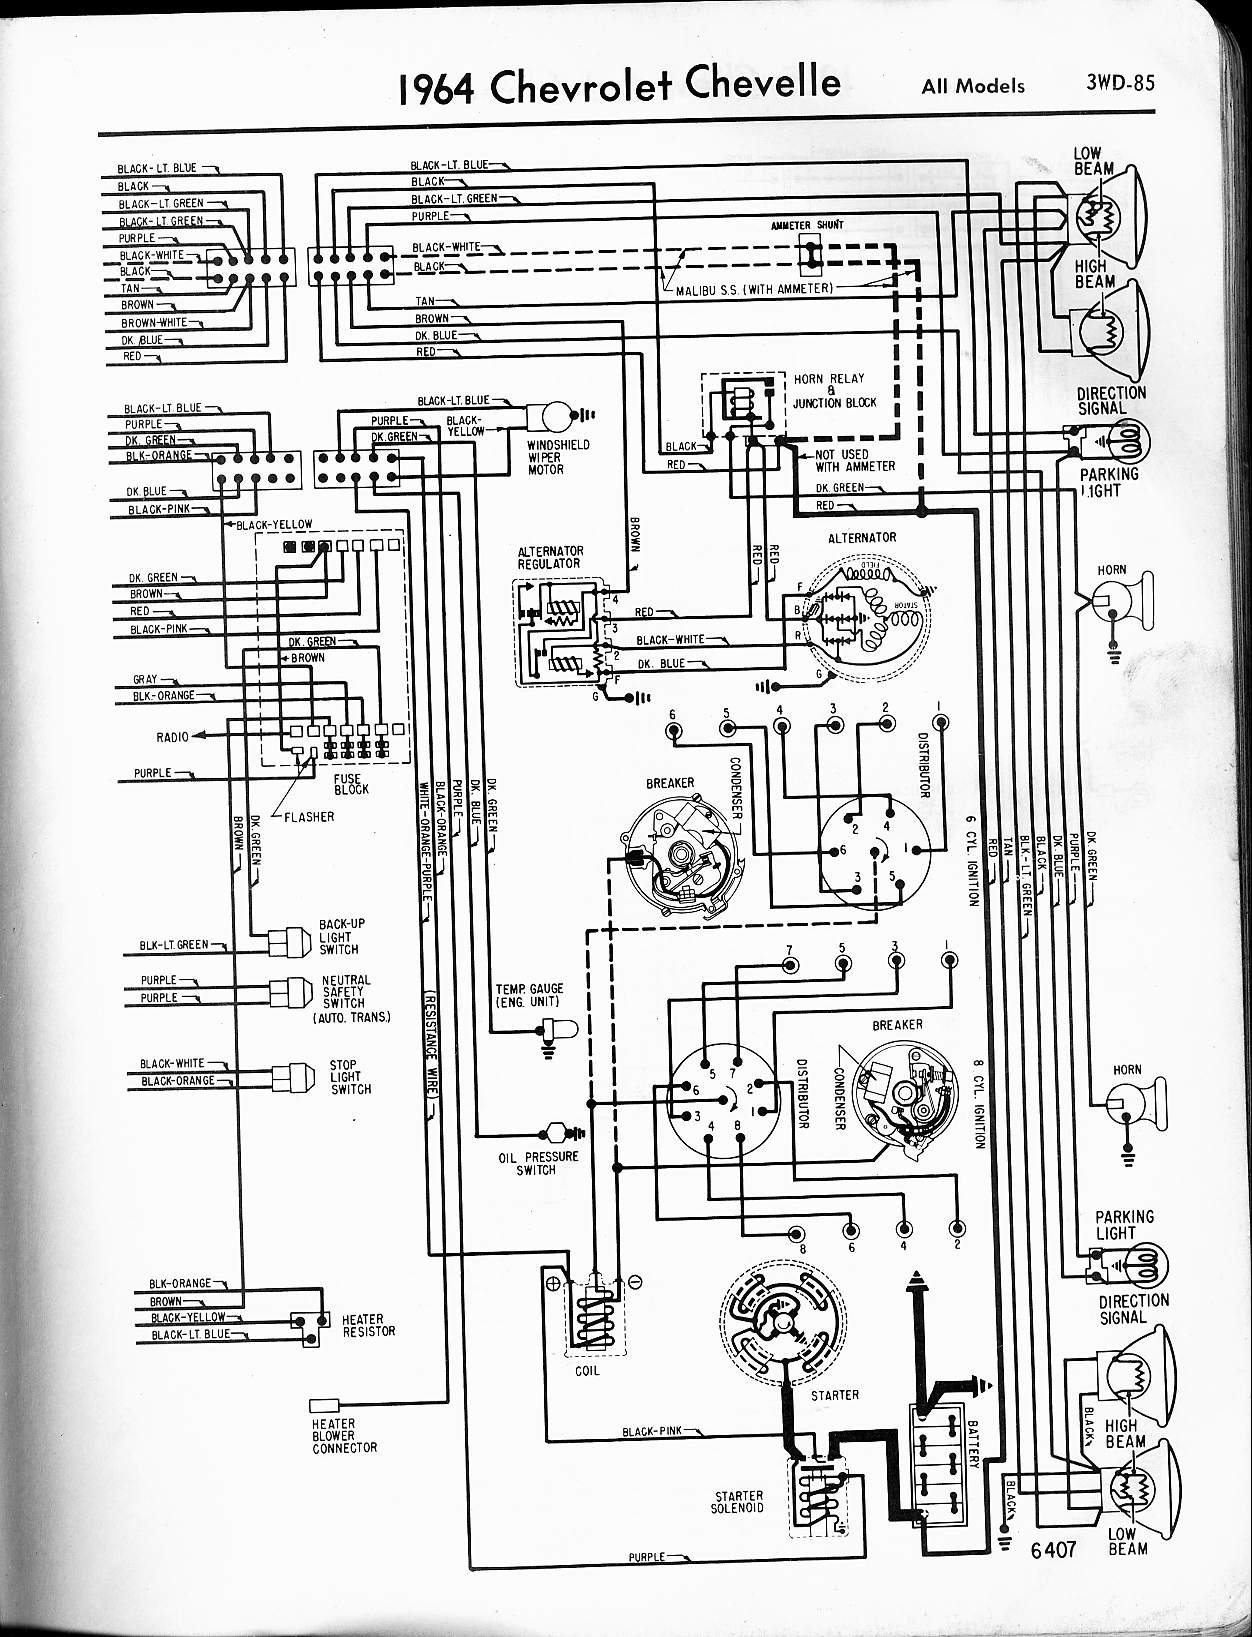 Magic Mobility X8 Wiring Diagram Library Chevy Diagrams Rh Wizard Com